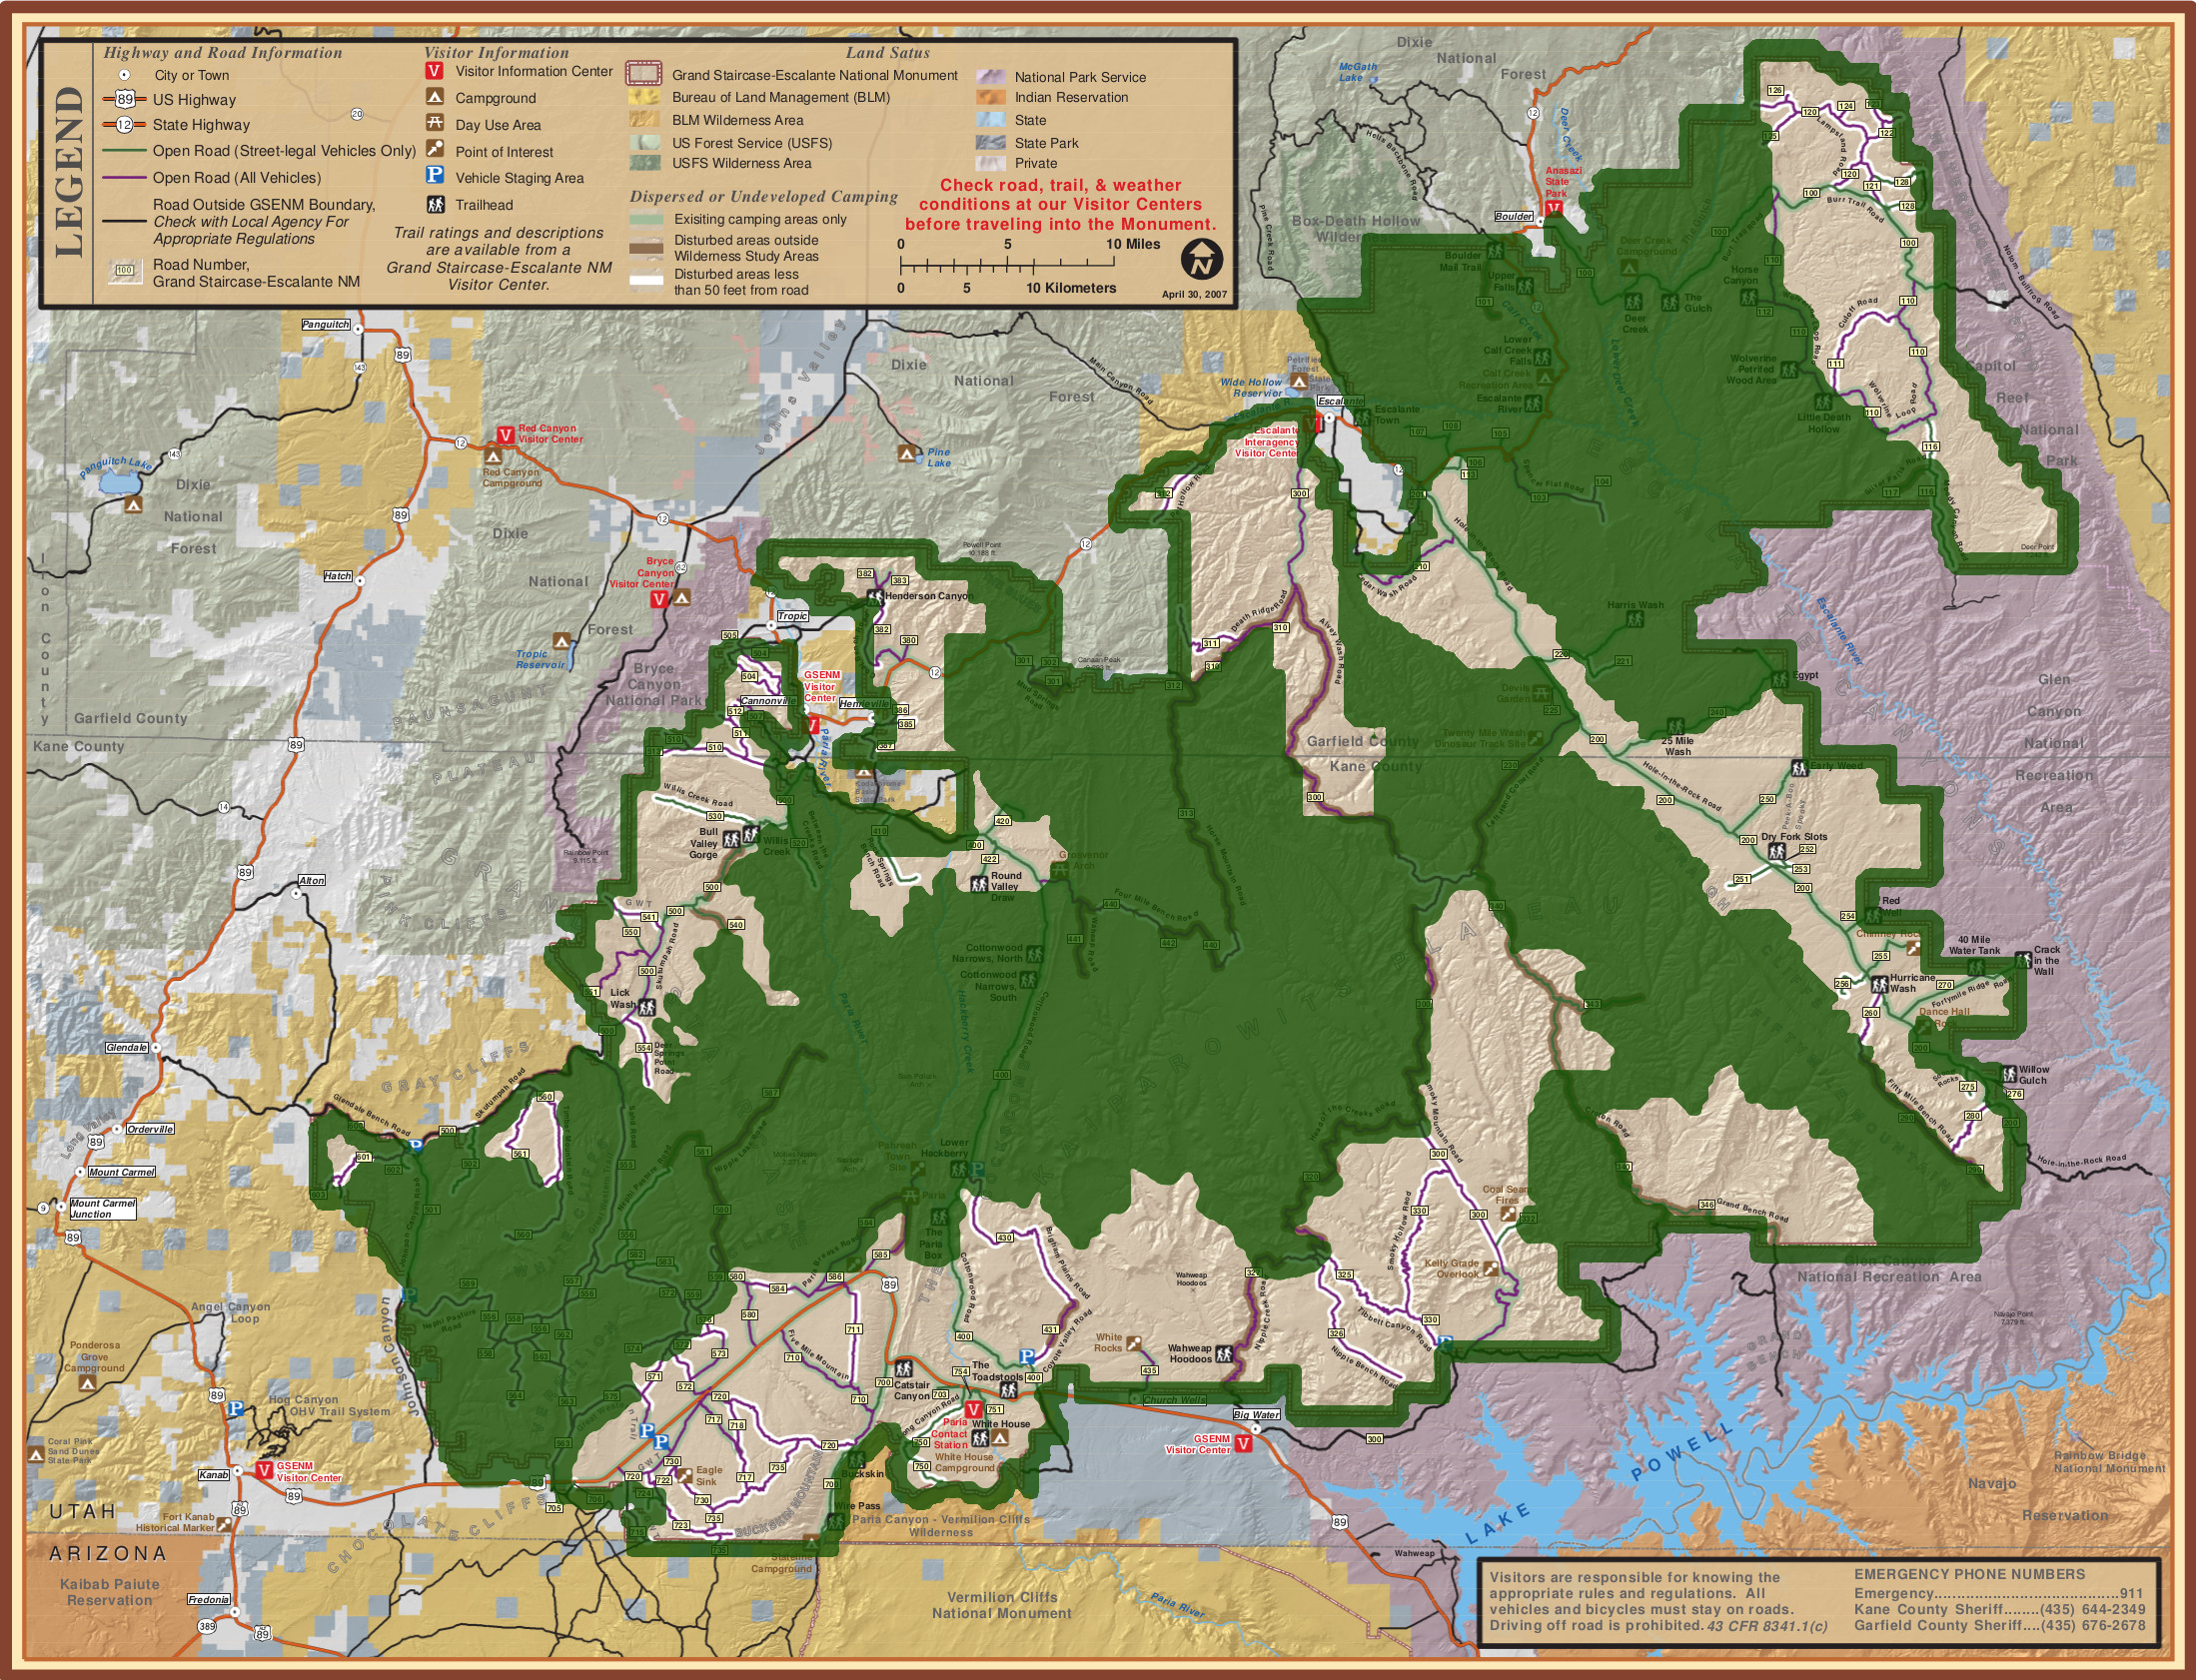 Grand Staircase Escalante Map File:Grand Staircase Escalante National Monument map overlay.png  Grand Staircase Escalante Map